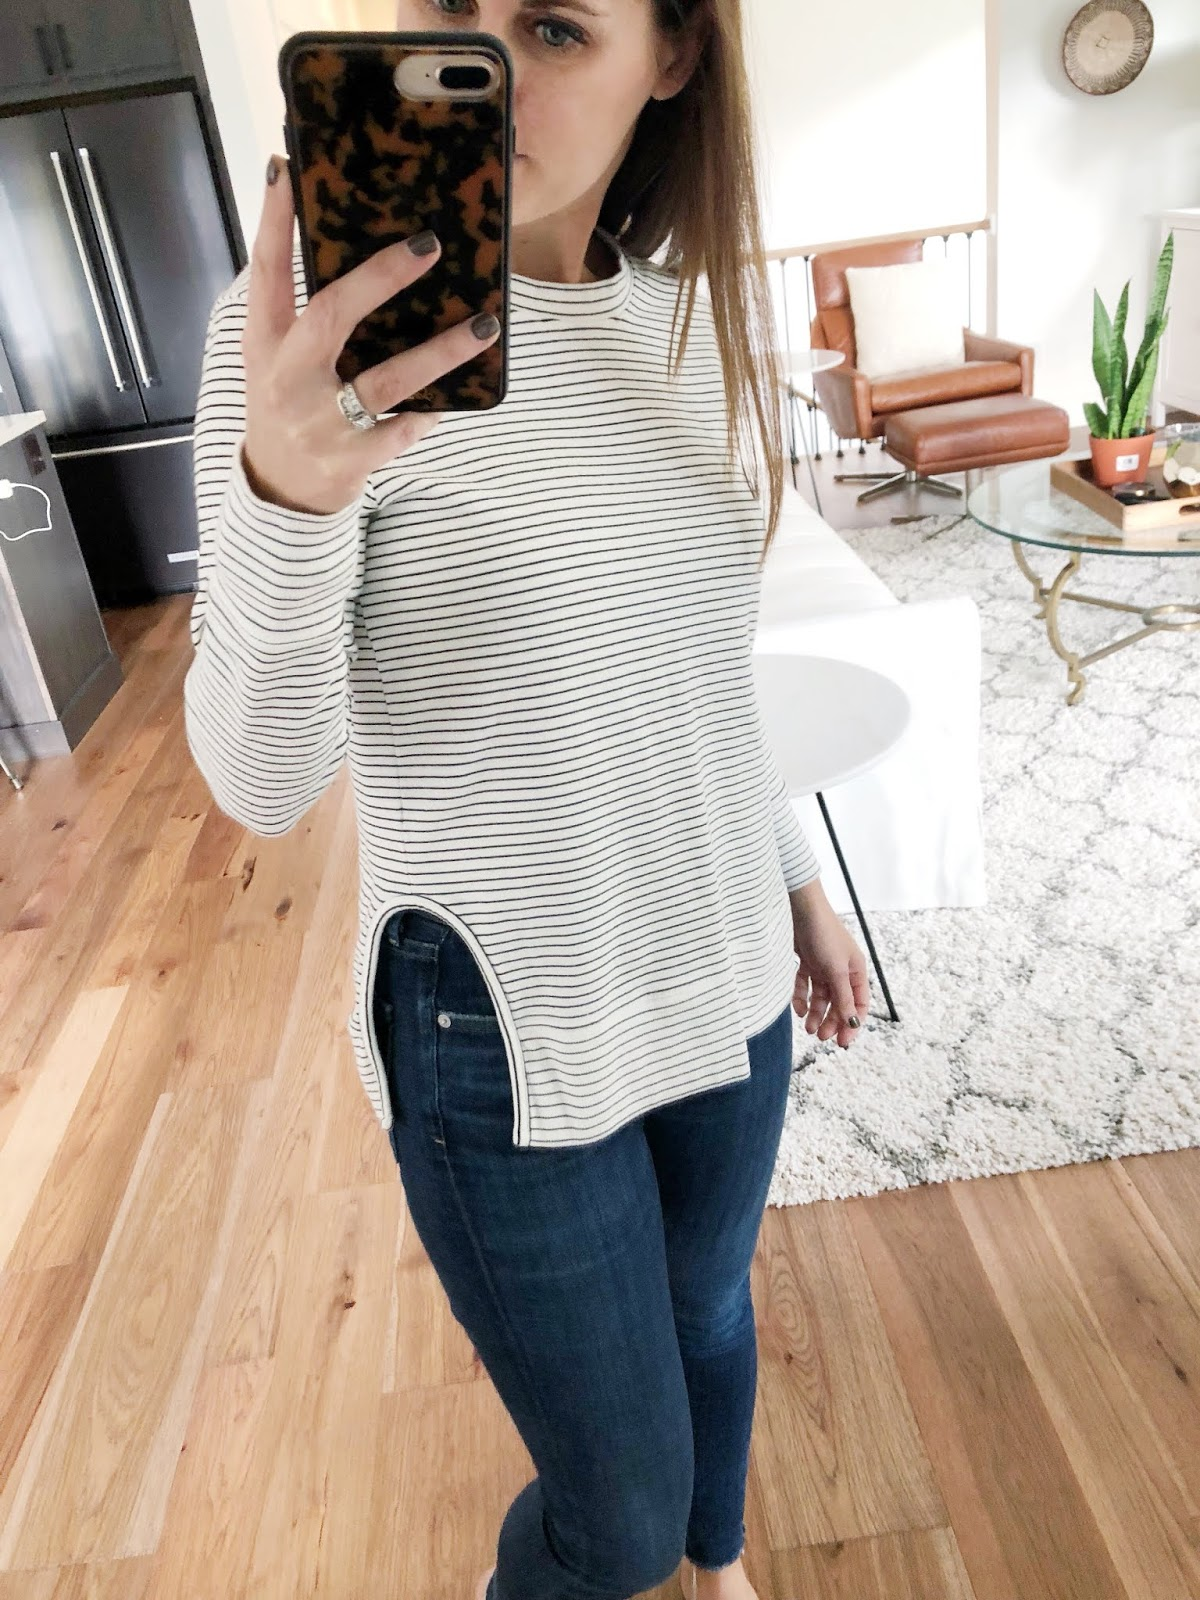 89a60d37d Do you shop for clothes at amazon? | The Good Life For Less | Bloglovin'